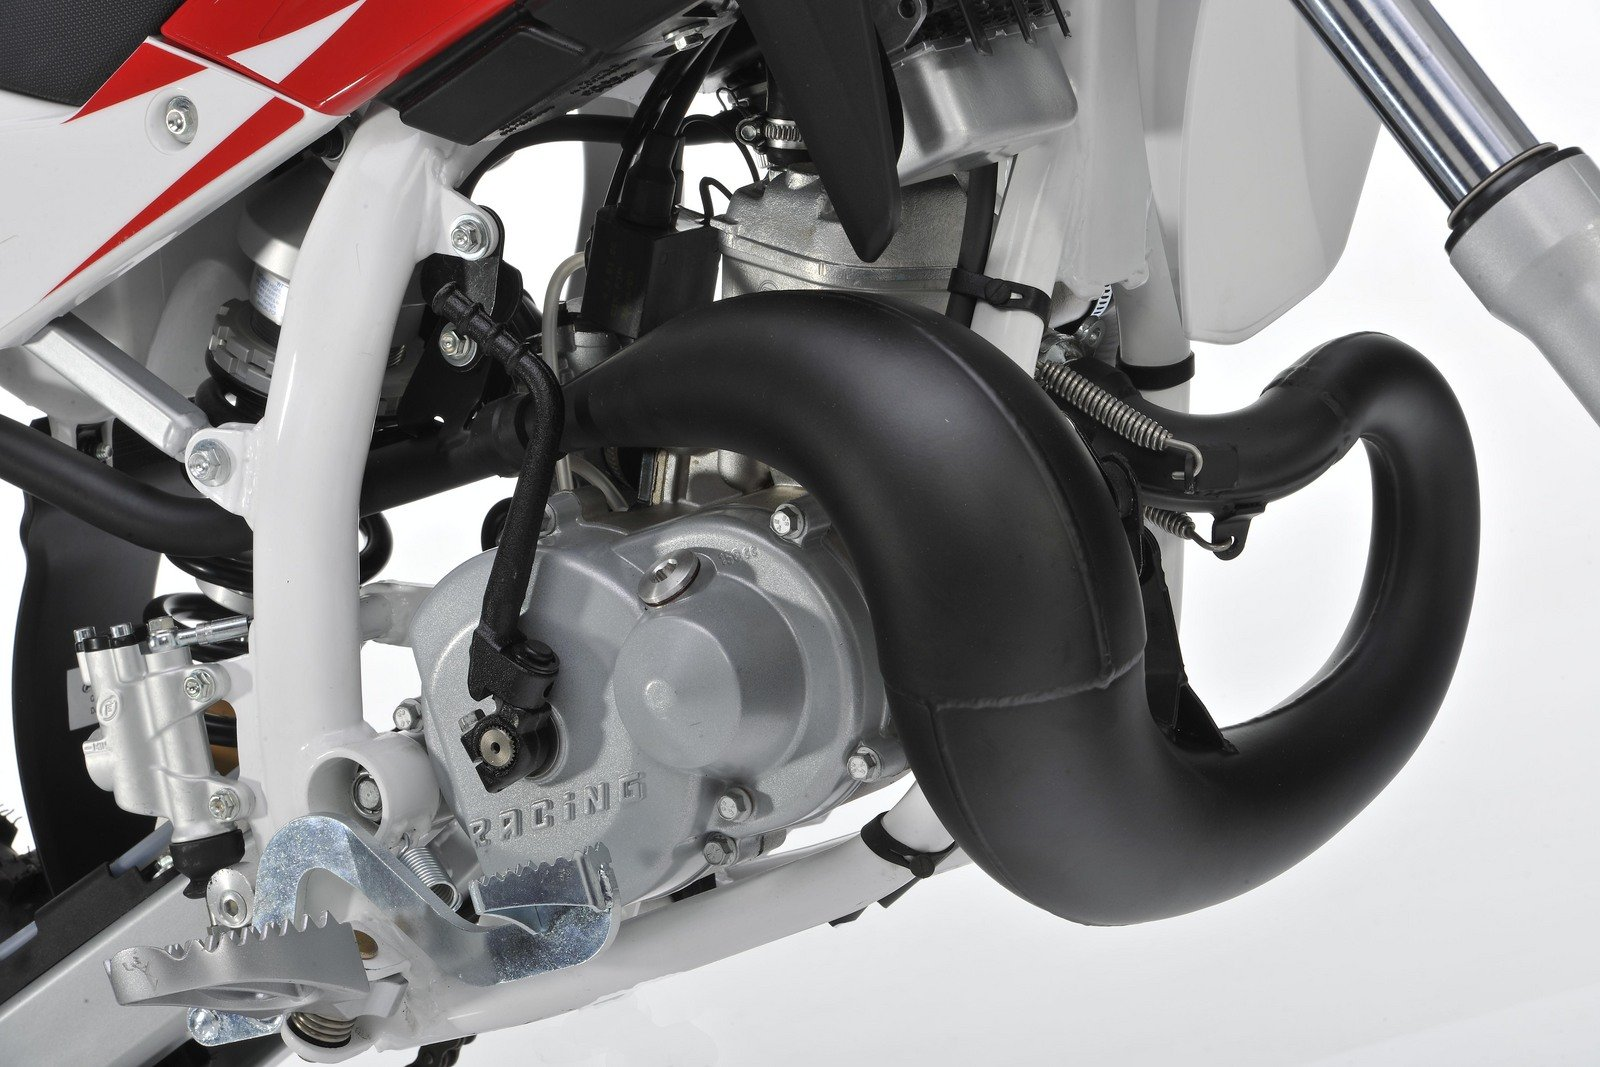 2011 Husqvarna CR / SM 50 Pictures, Photos, Wallpapers